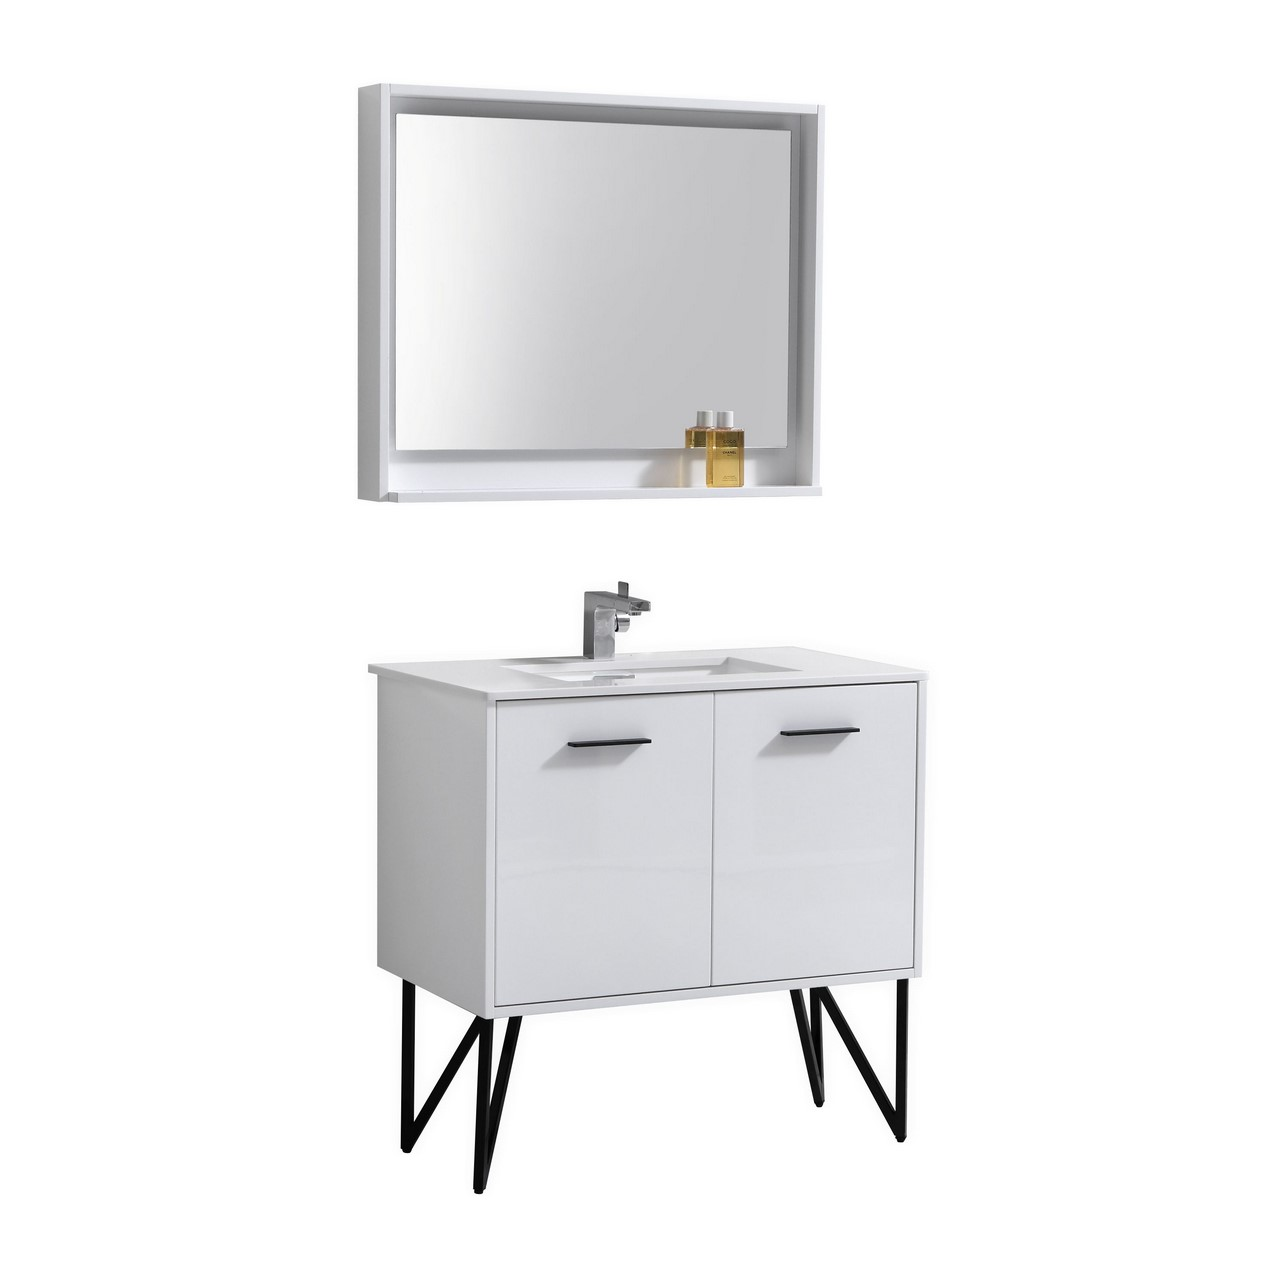 Matching Vanity Light And Mirror : Bosco 36